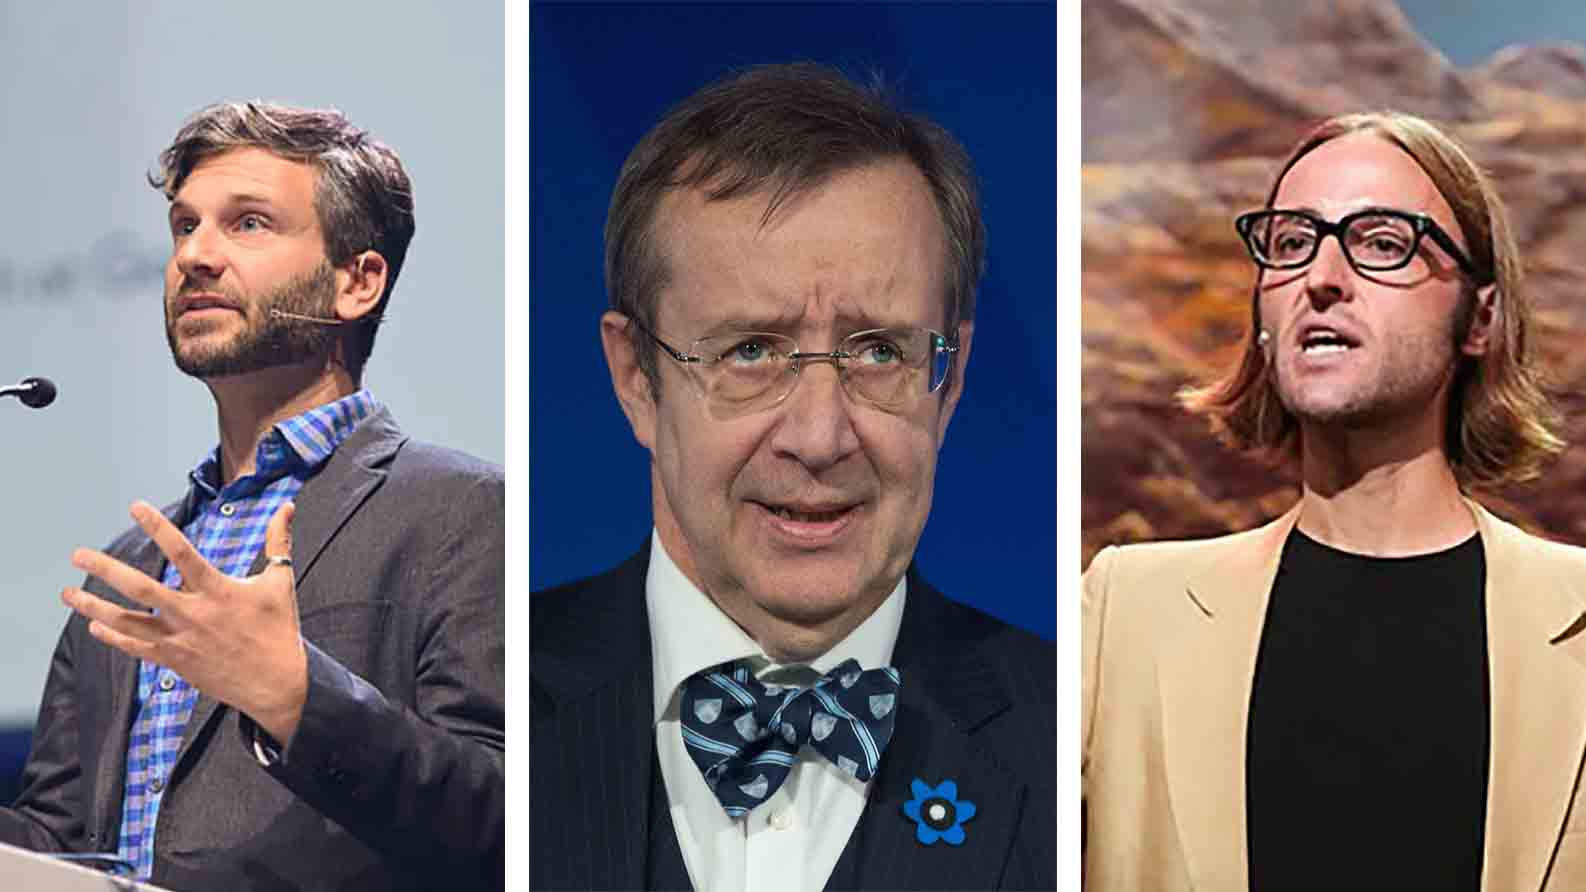 Greg Corrado, Toomas Hendrik Ilves, James Beacham